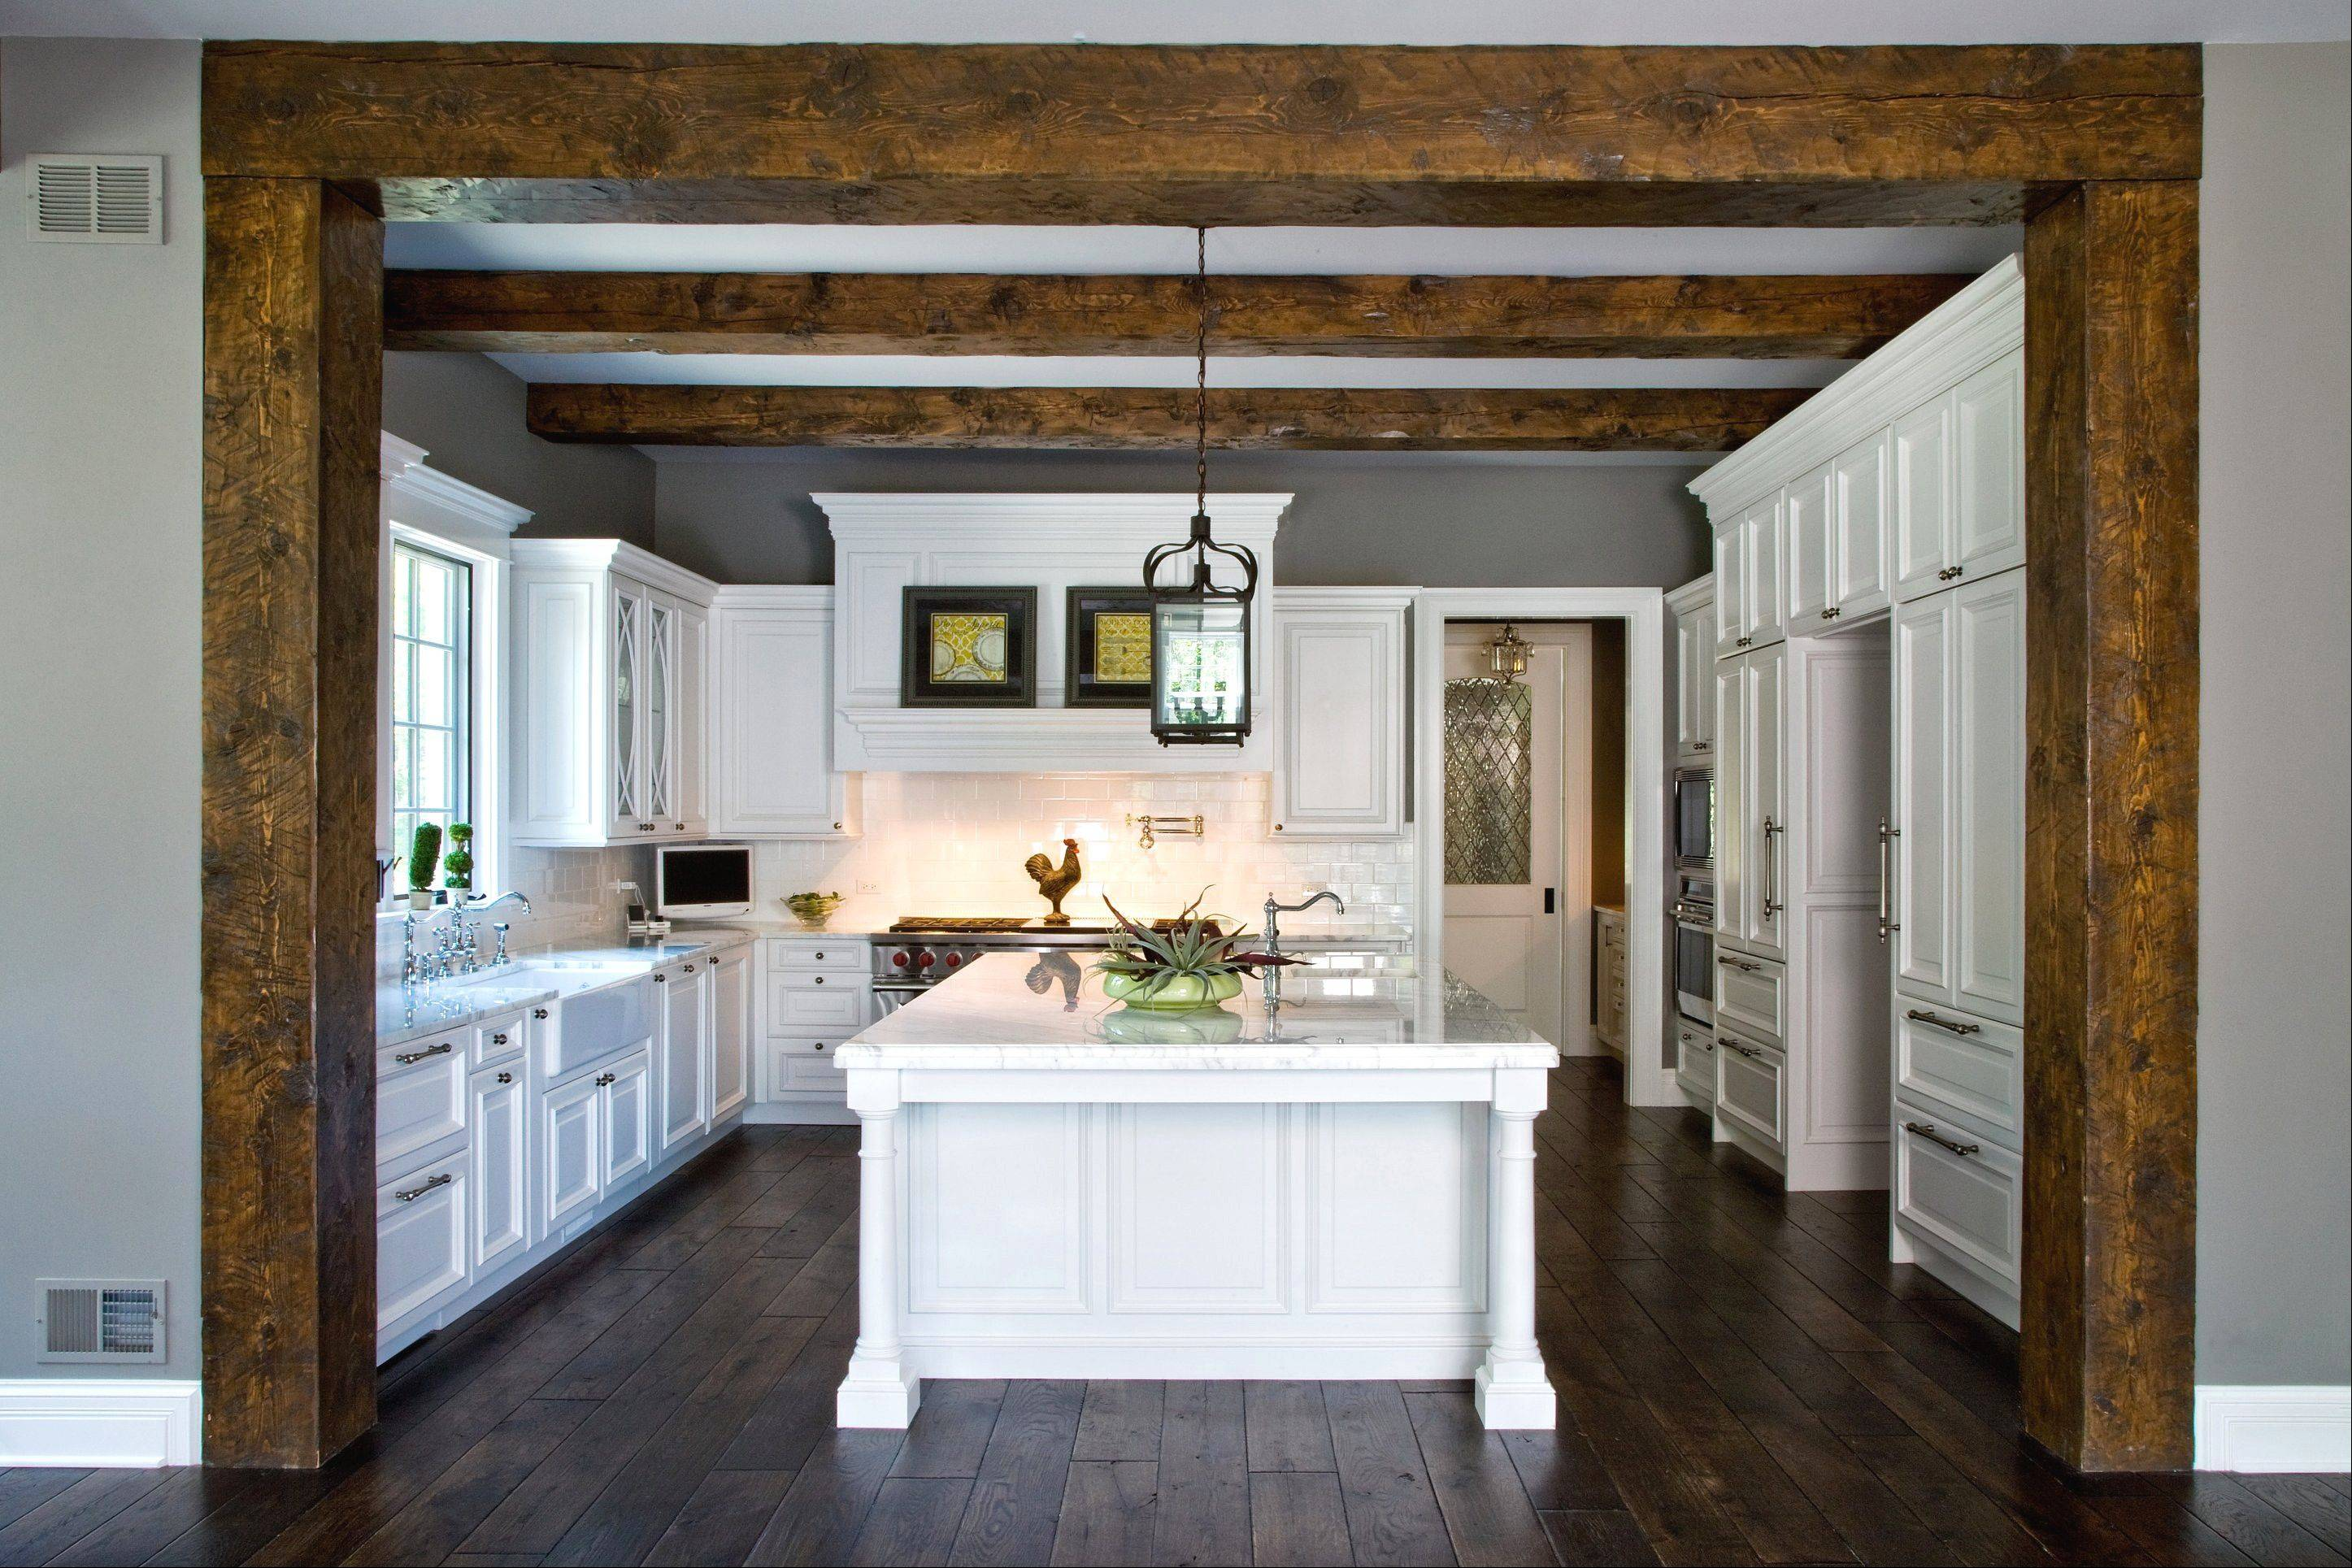 Reclaimed wood beams complement the CabinetWerks custom kitchen complete with state-of-the-art appliances.